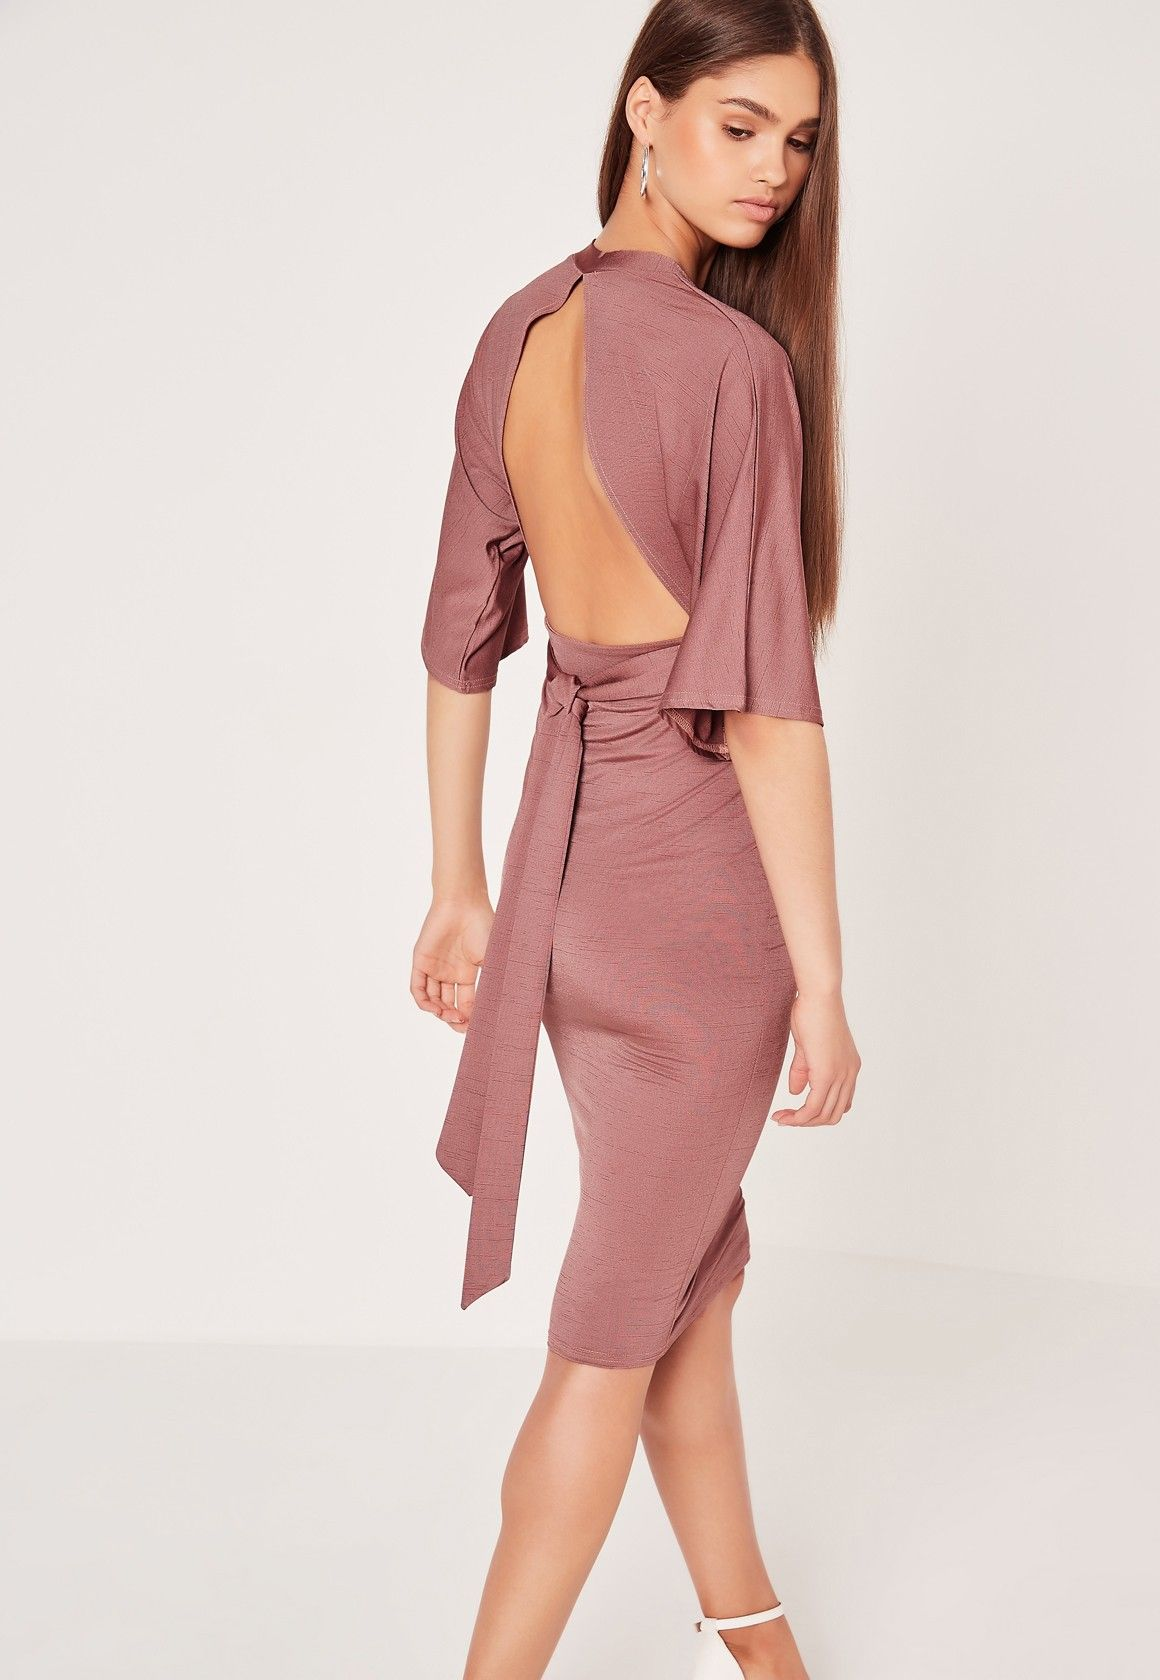 We're getting our romantic eyes on for this weekend in this midi. Featuring a burnt rose pink hue, sexy plunge neckline with floaty kimono sleeves, open back and a sophis' midi style, we're teaming with barely there heels and a basic clutch...